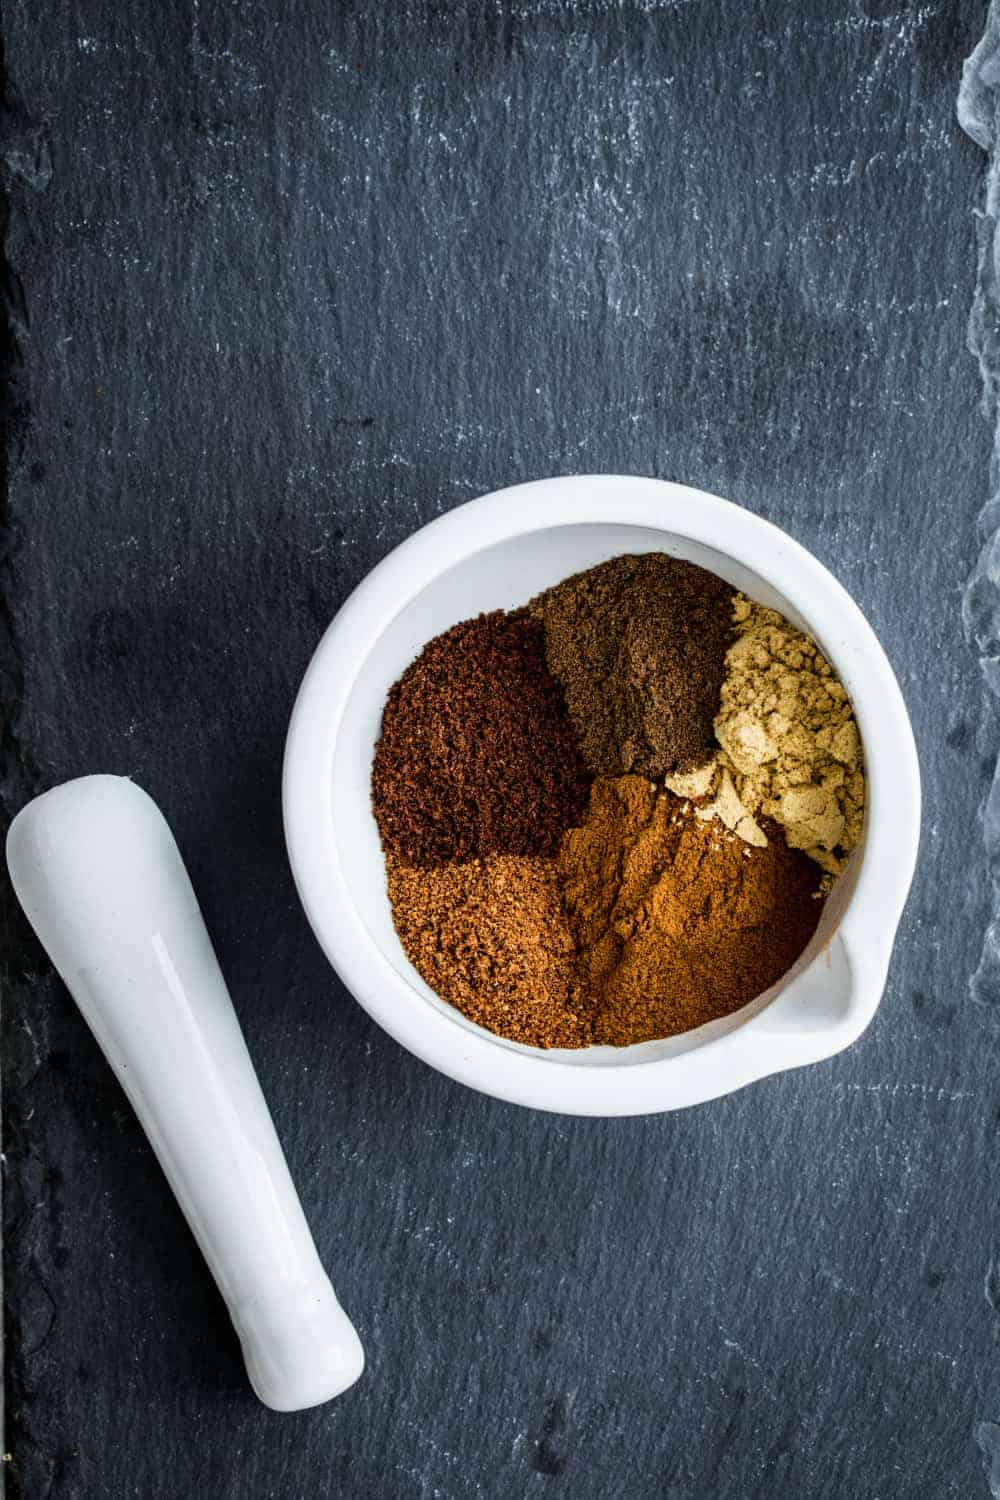 Pumpkin Pie Spice is so simple to make at home! So perfect for fall baking.